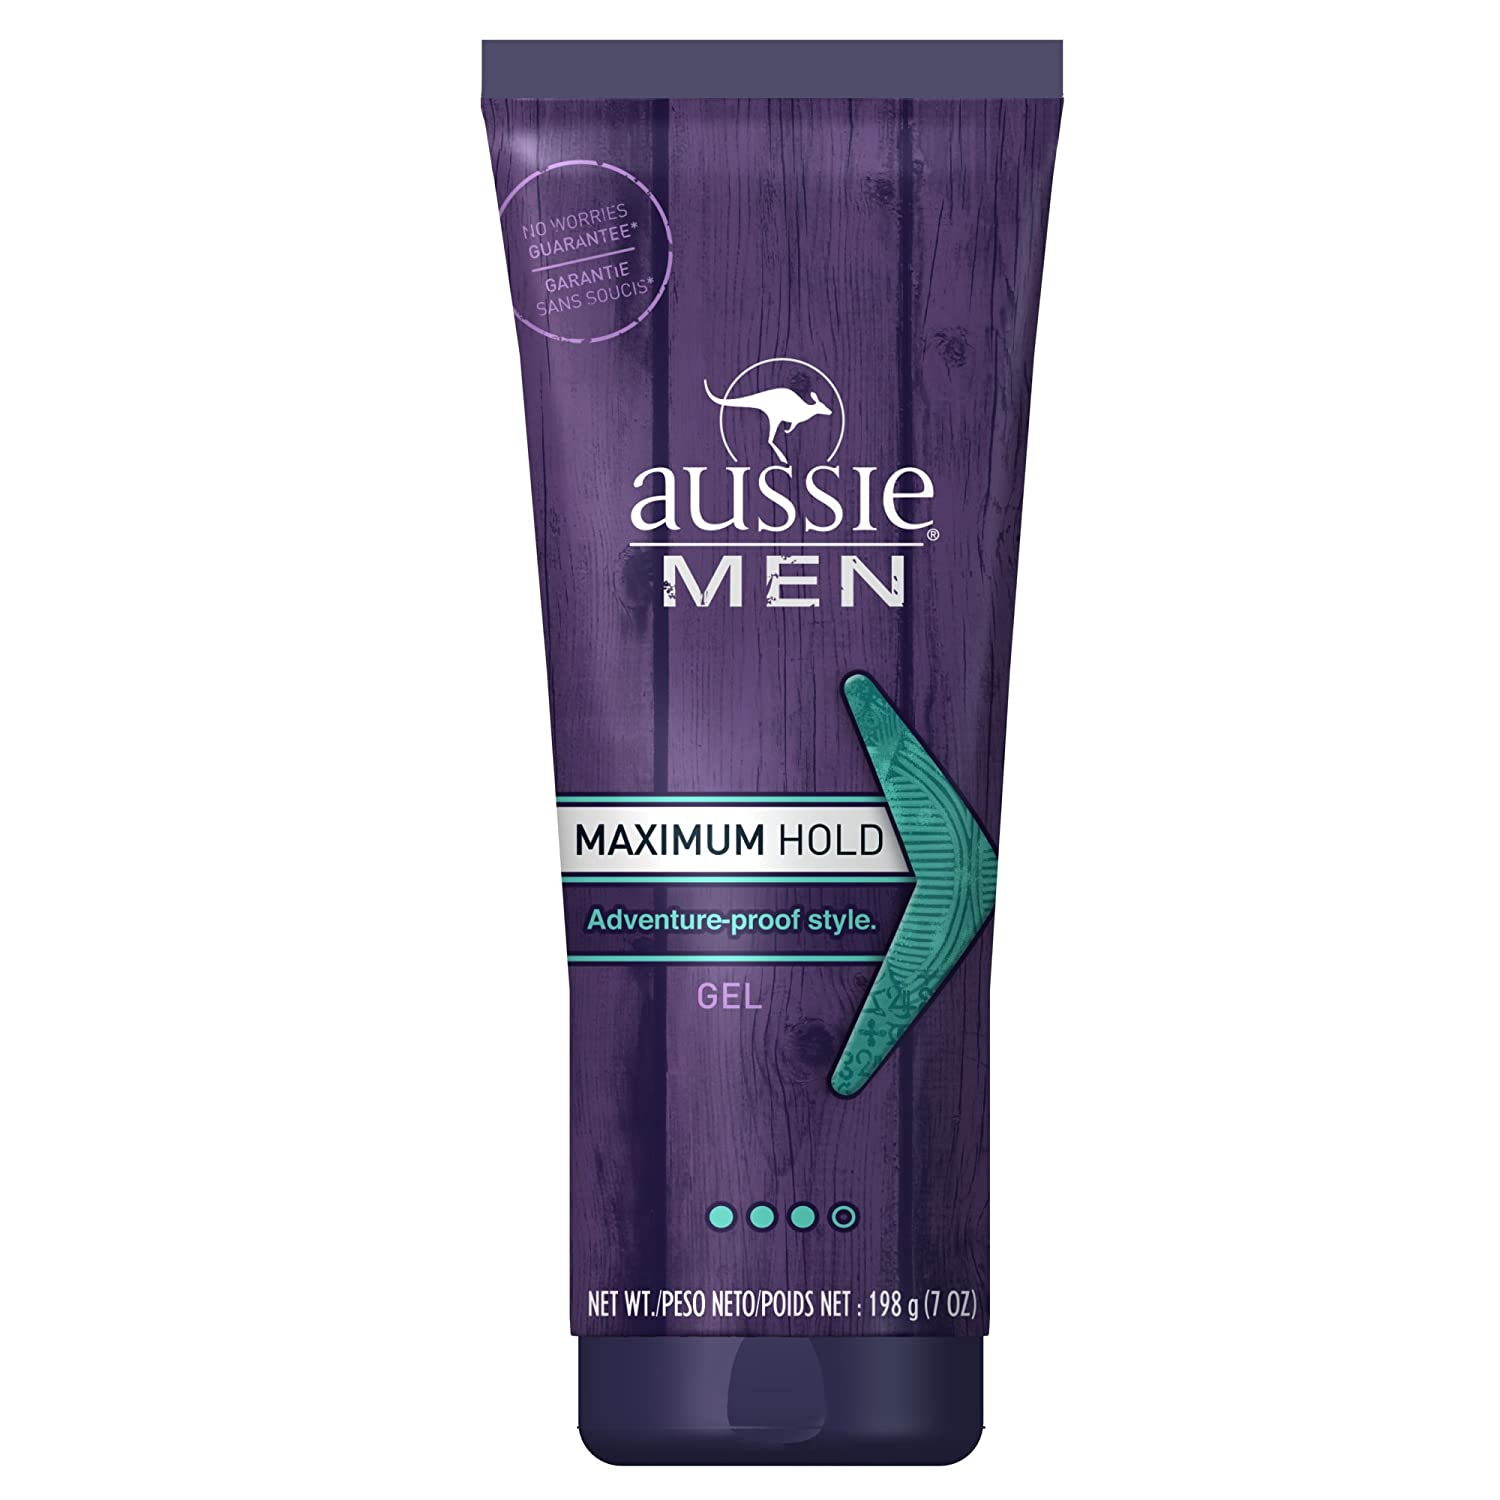 Aussie Men's Products